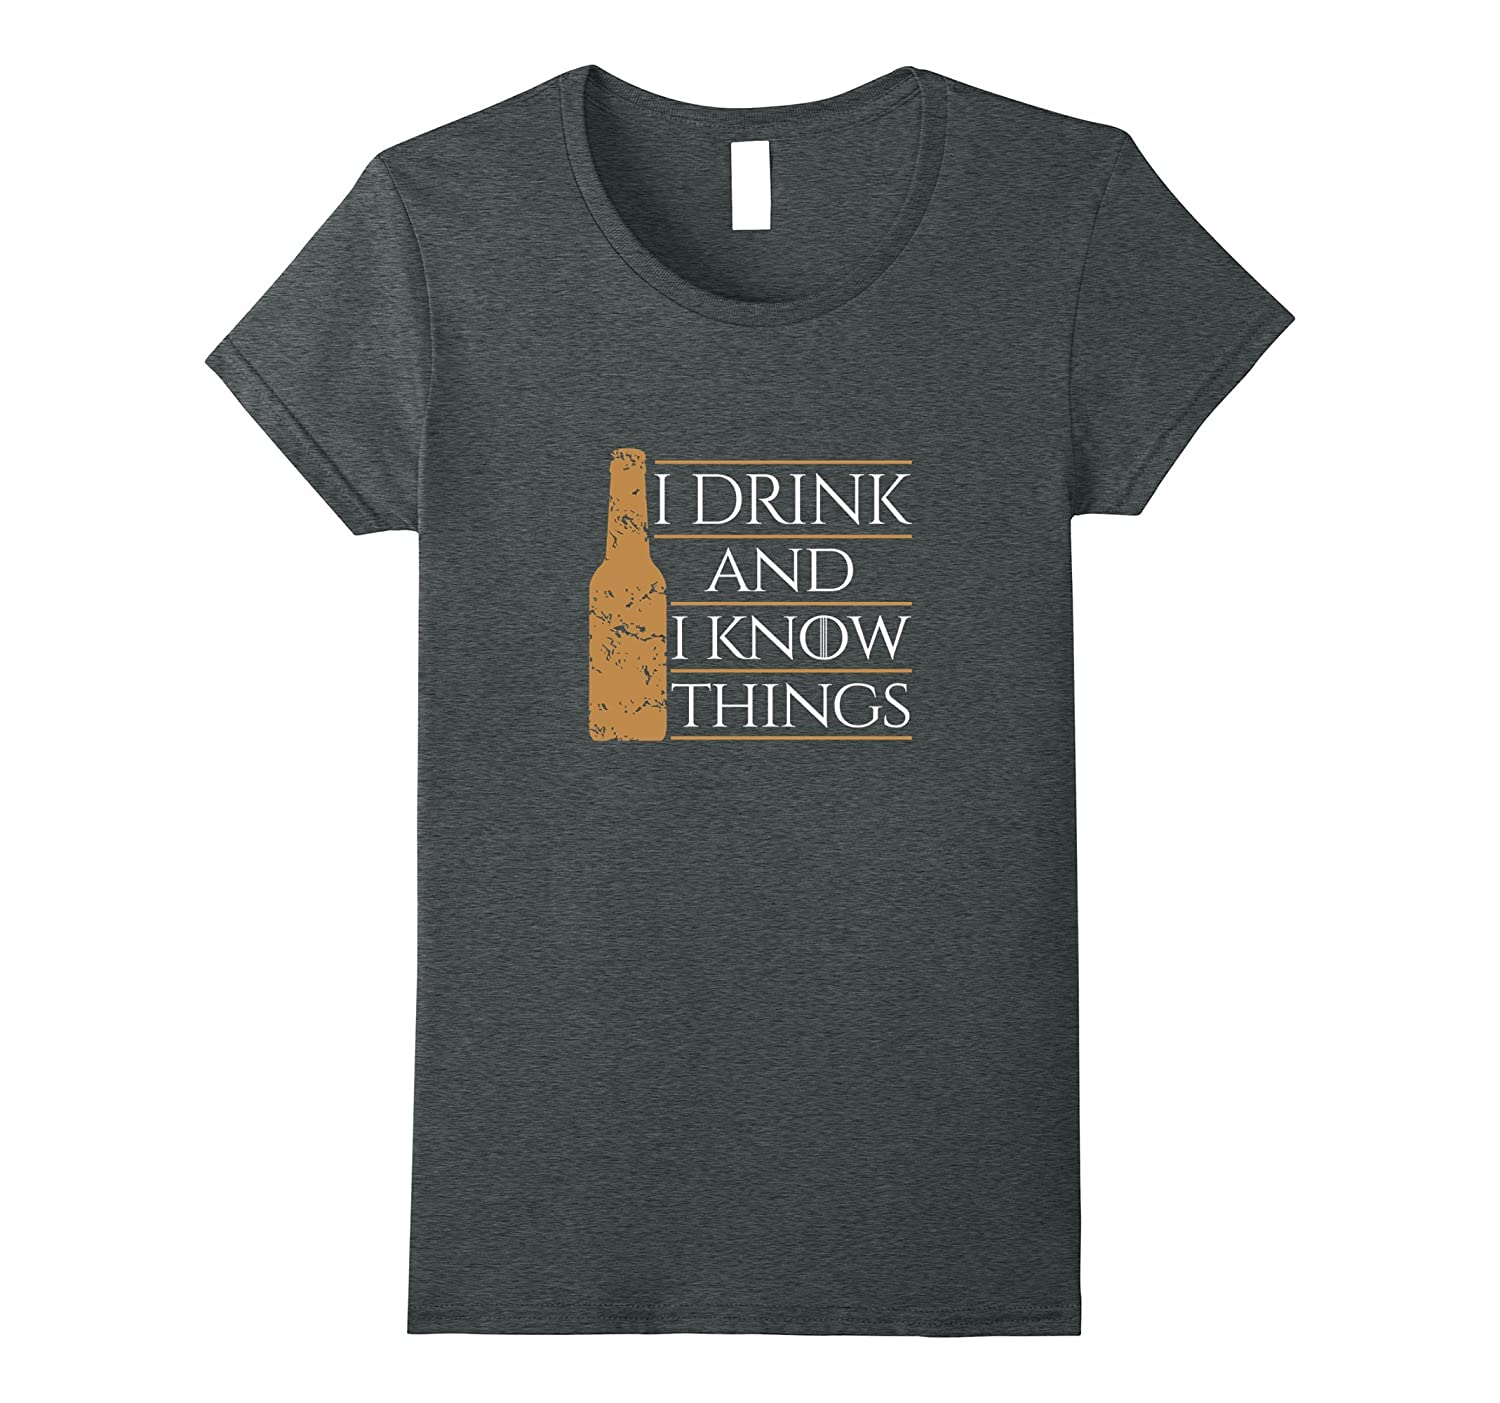 I drink and I know things humor t-shirt